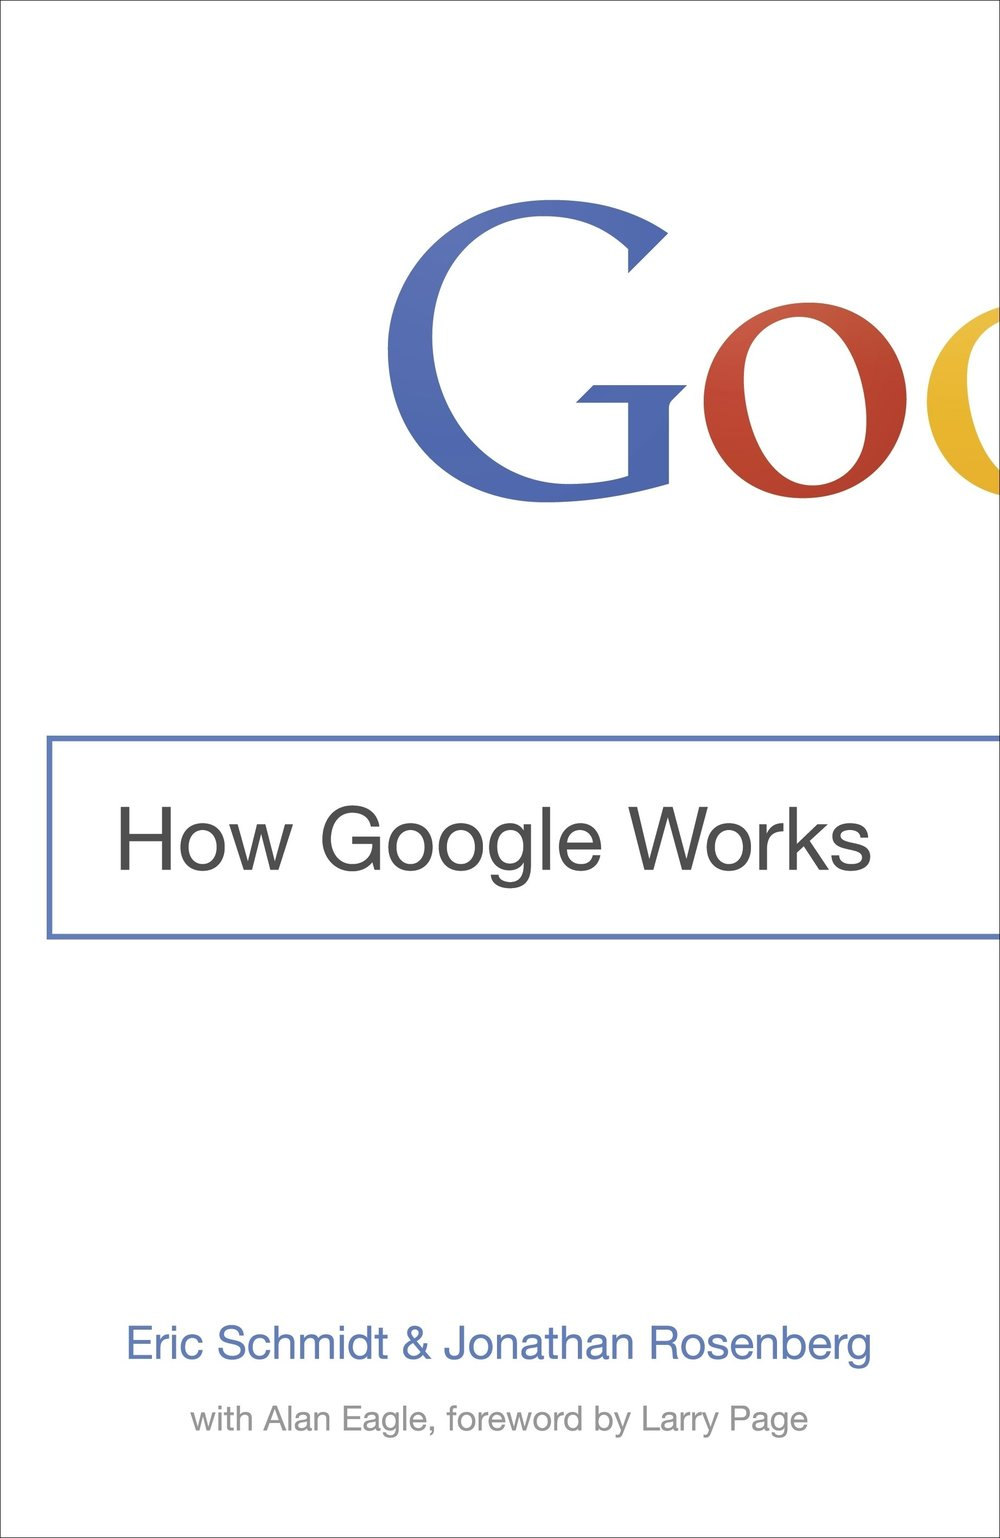 How Google Works.jpeg